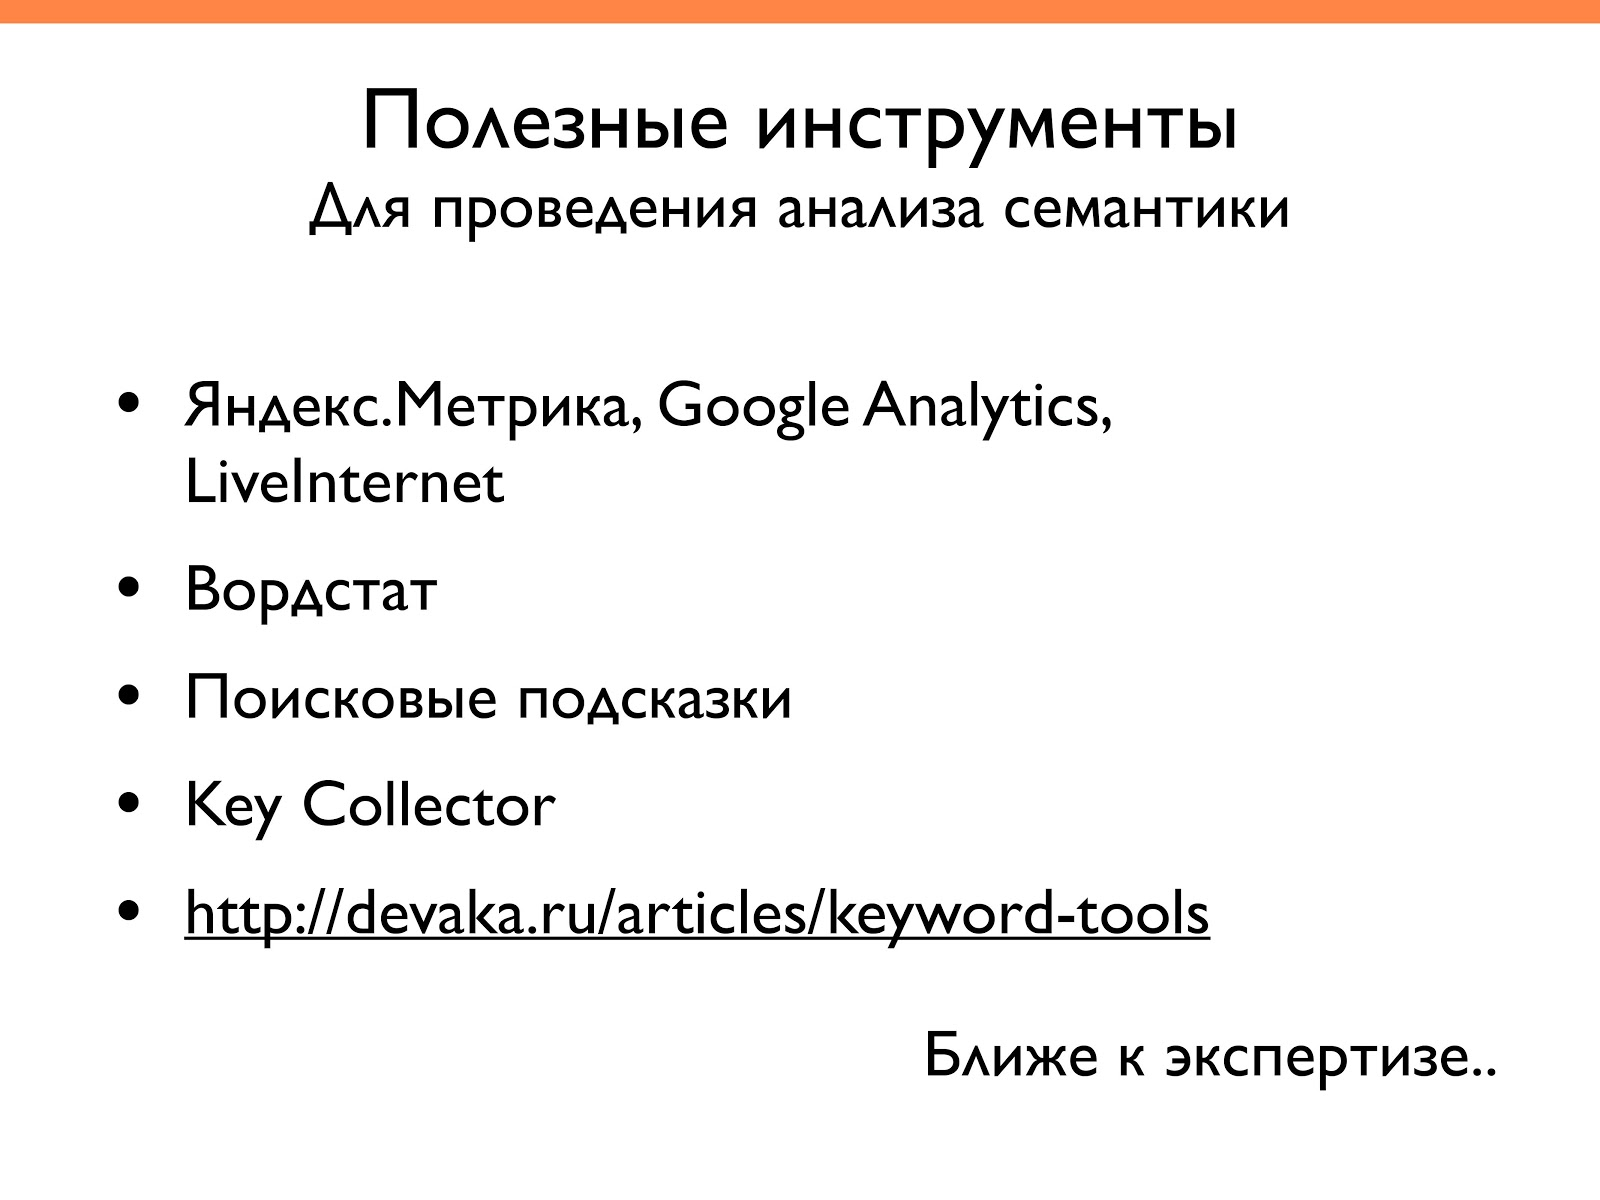 useful tools for analyzing semantics